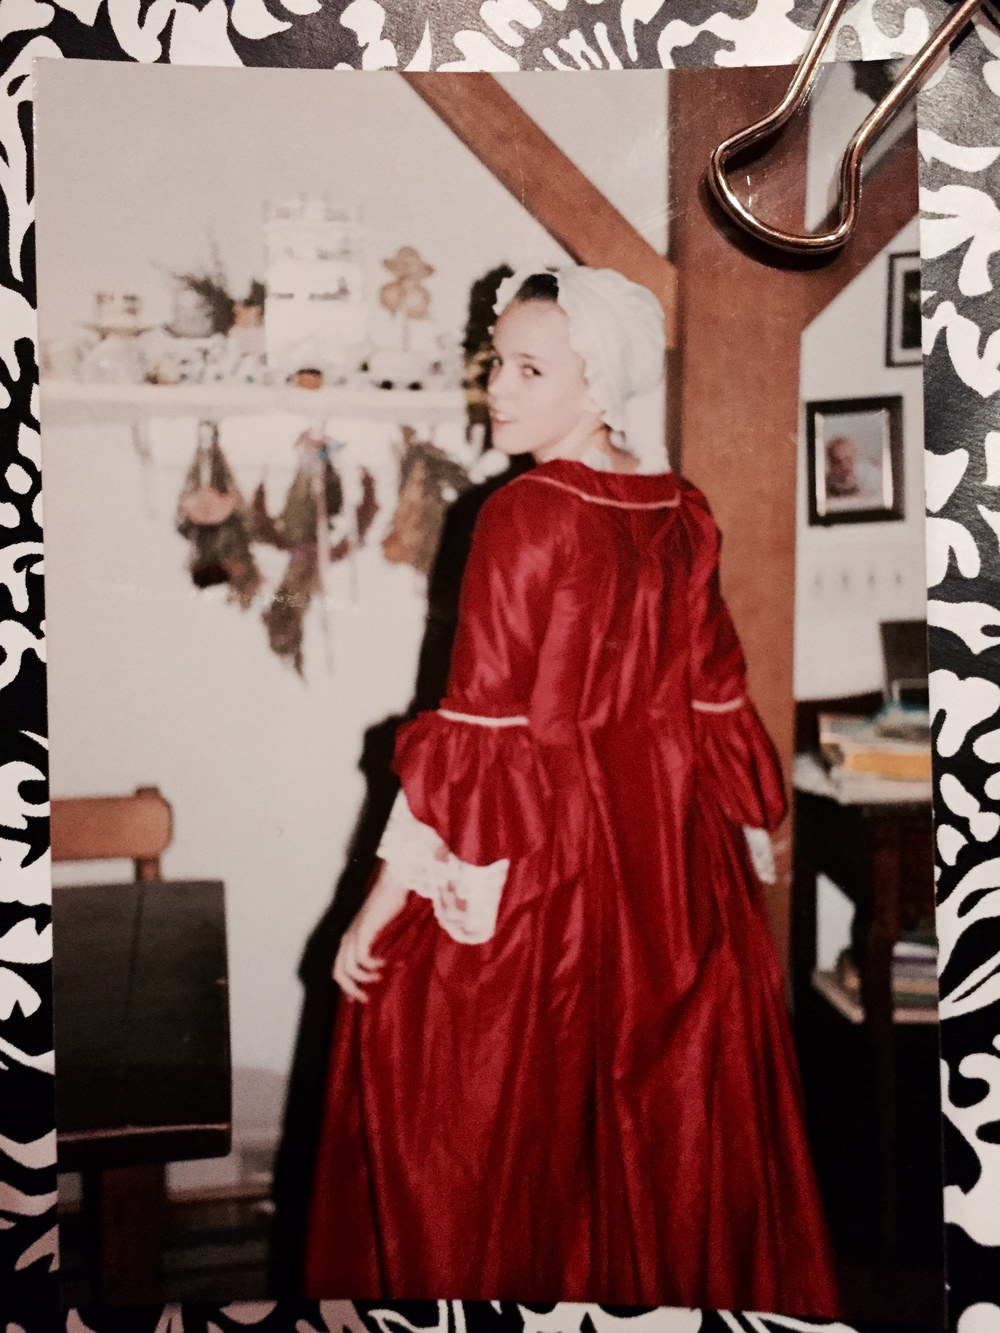 That's me, in my favorite CW dress, maybe around 1991. It is the only gown that was designed just for me. I wore it in a program at the governor's palace, and to a few other places as well.